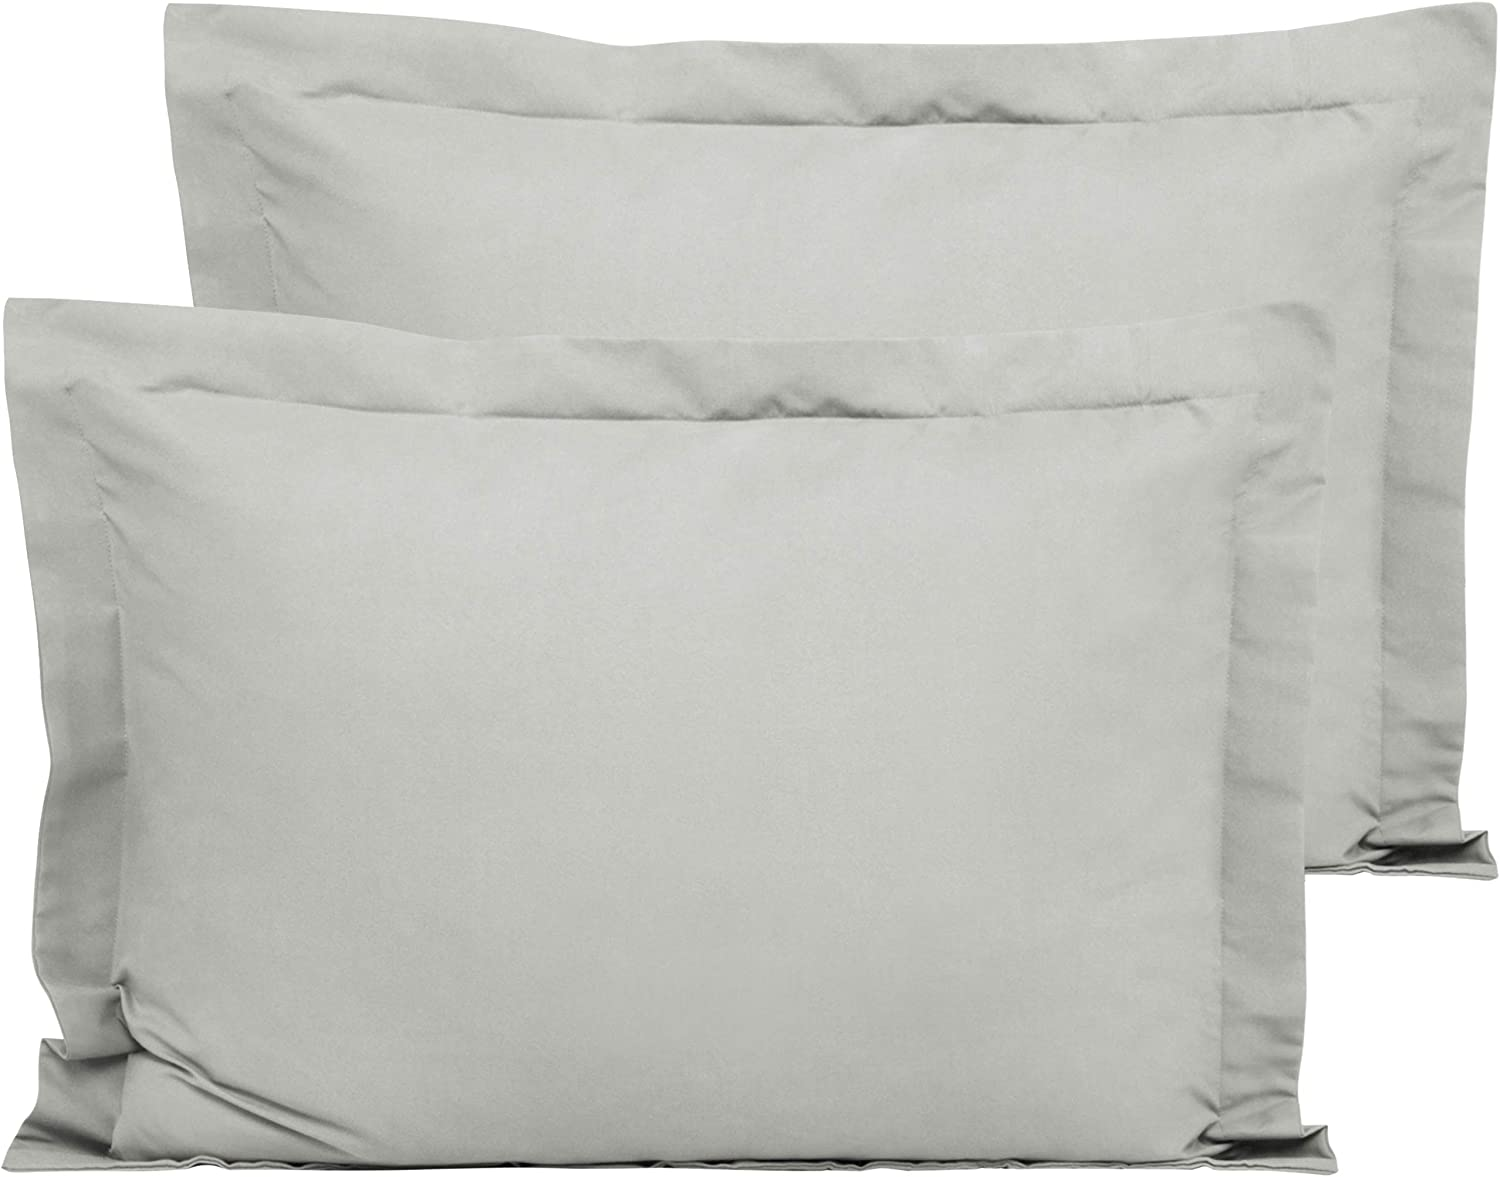 Ultra Soft and Cozy FLXXIE European Shams Euro 26 x 26 Coffee Pack of 2 Microfiber Throw Pillow Covers